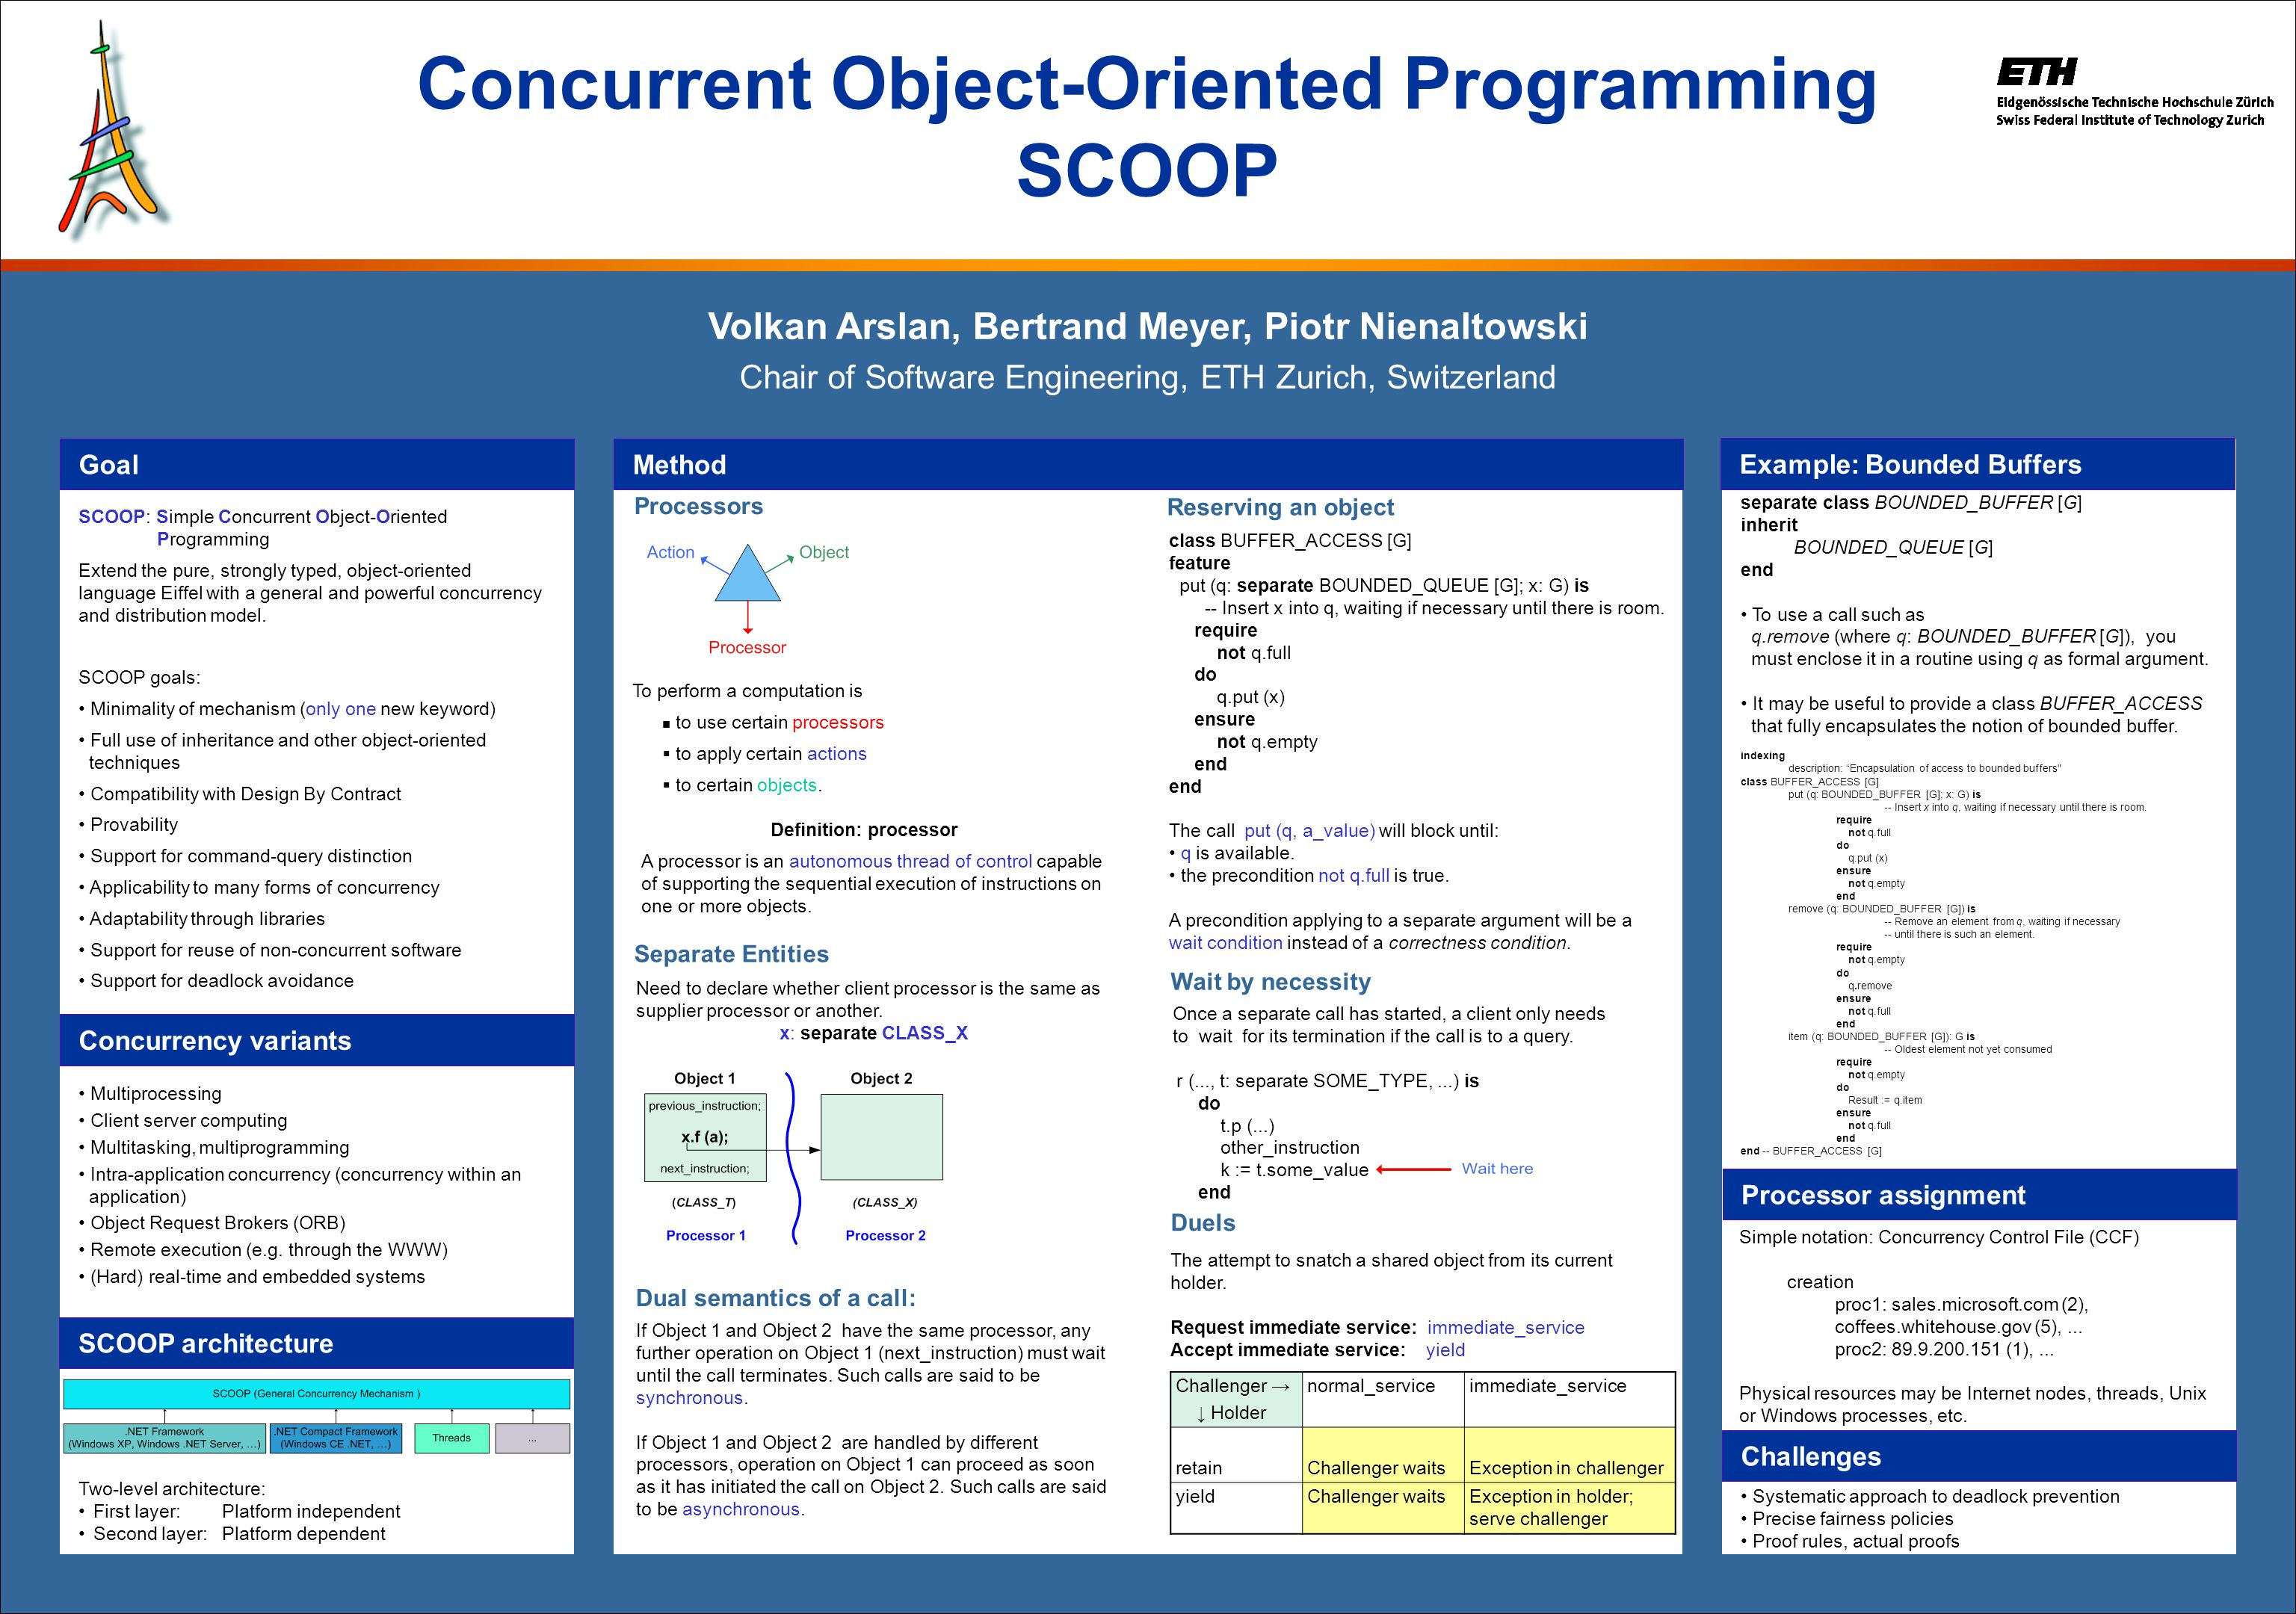 SCOOP: Simple Concurrent Object-Oriented Programming Extend the pure, strongly typed, object-oriented language Eiffel with a general and powerful concurrency and distribution model.